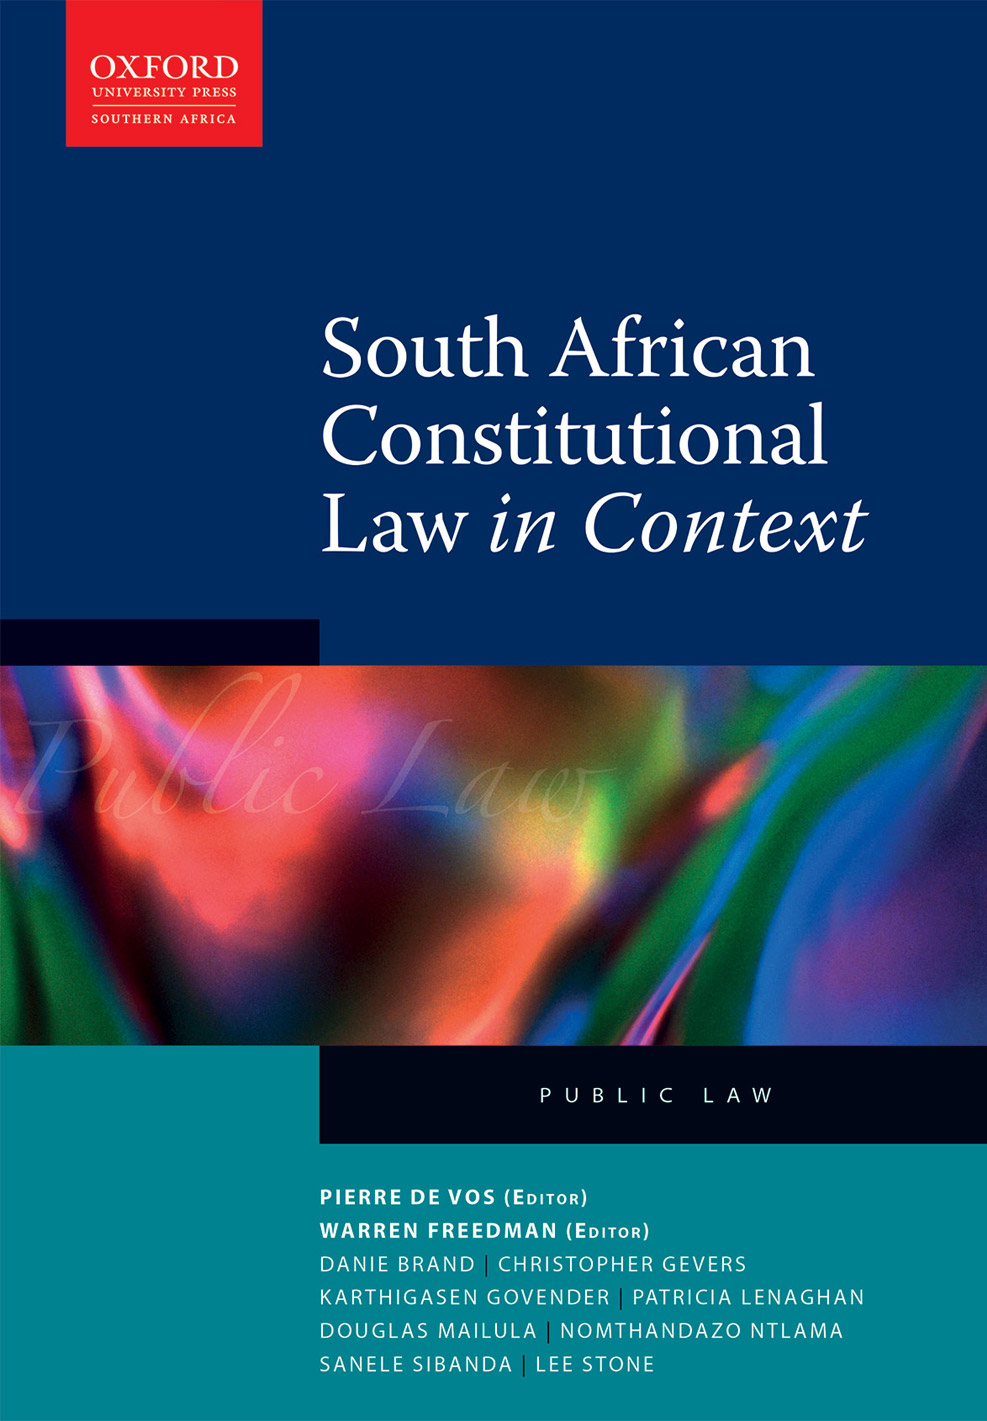 9780195991376_South-African-Constitutional-Law_cov (3)